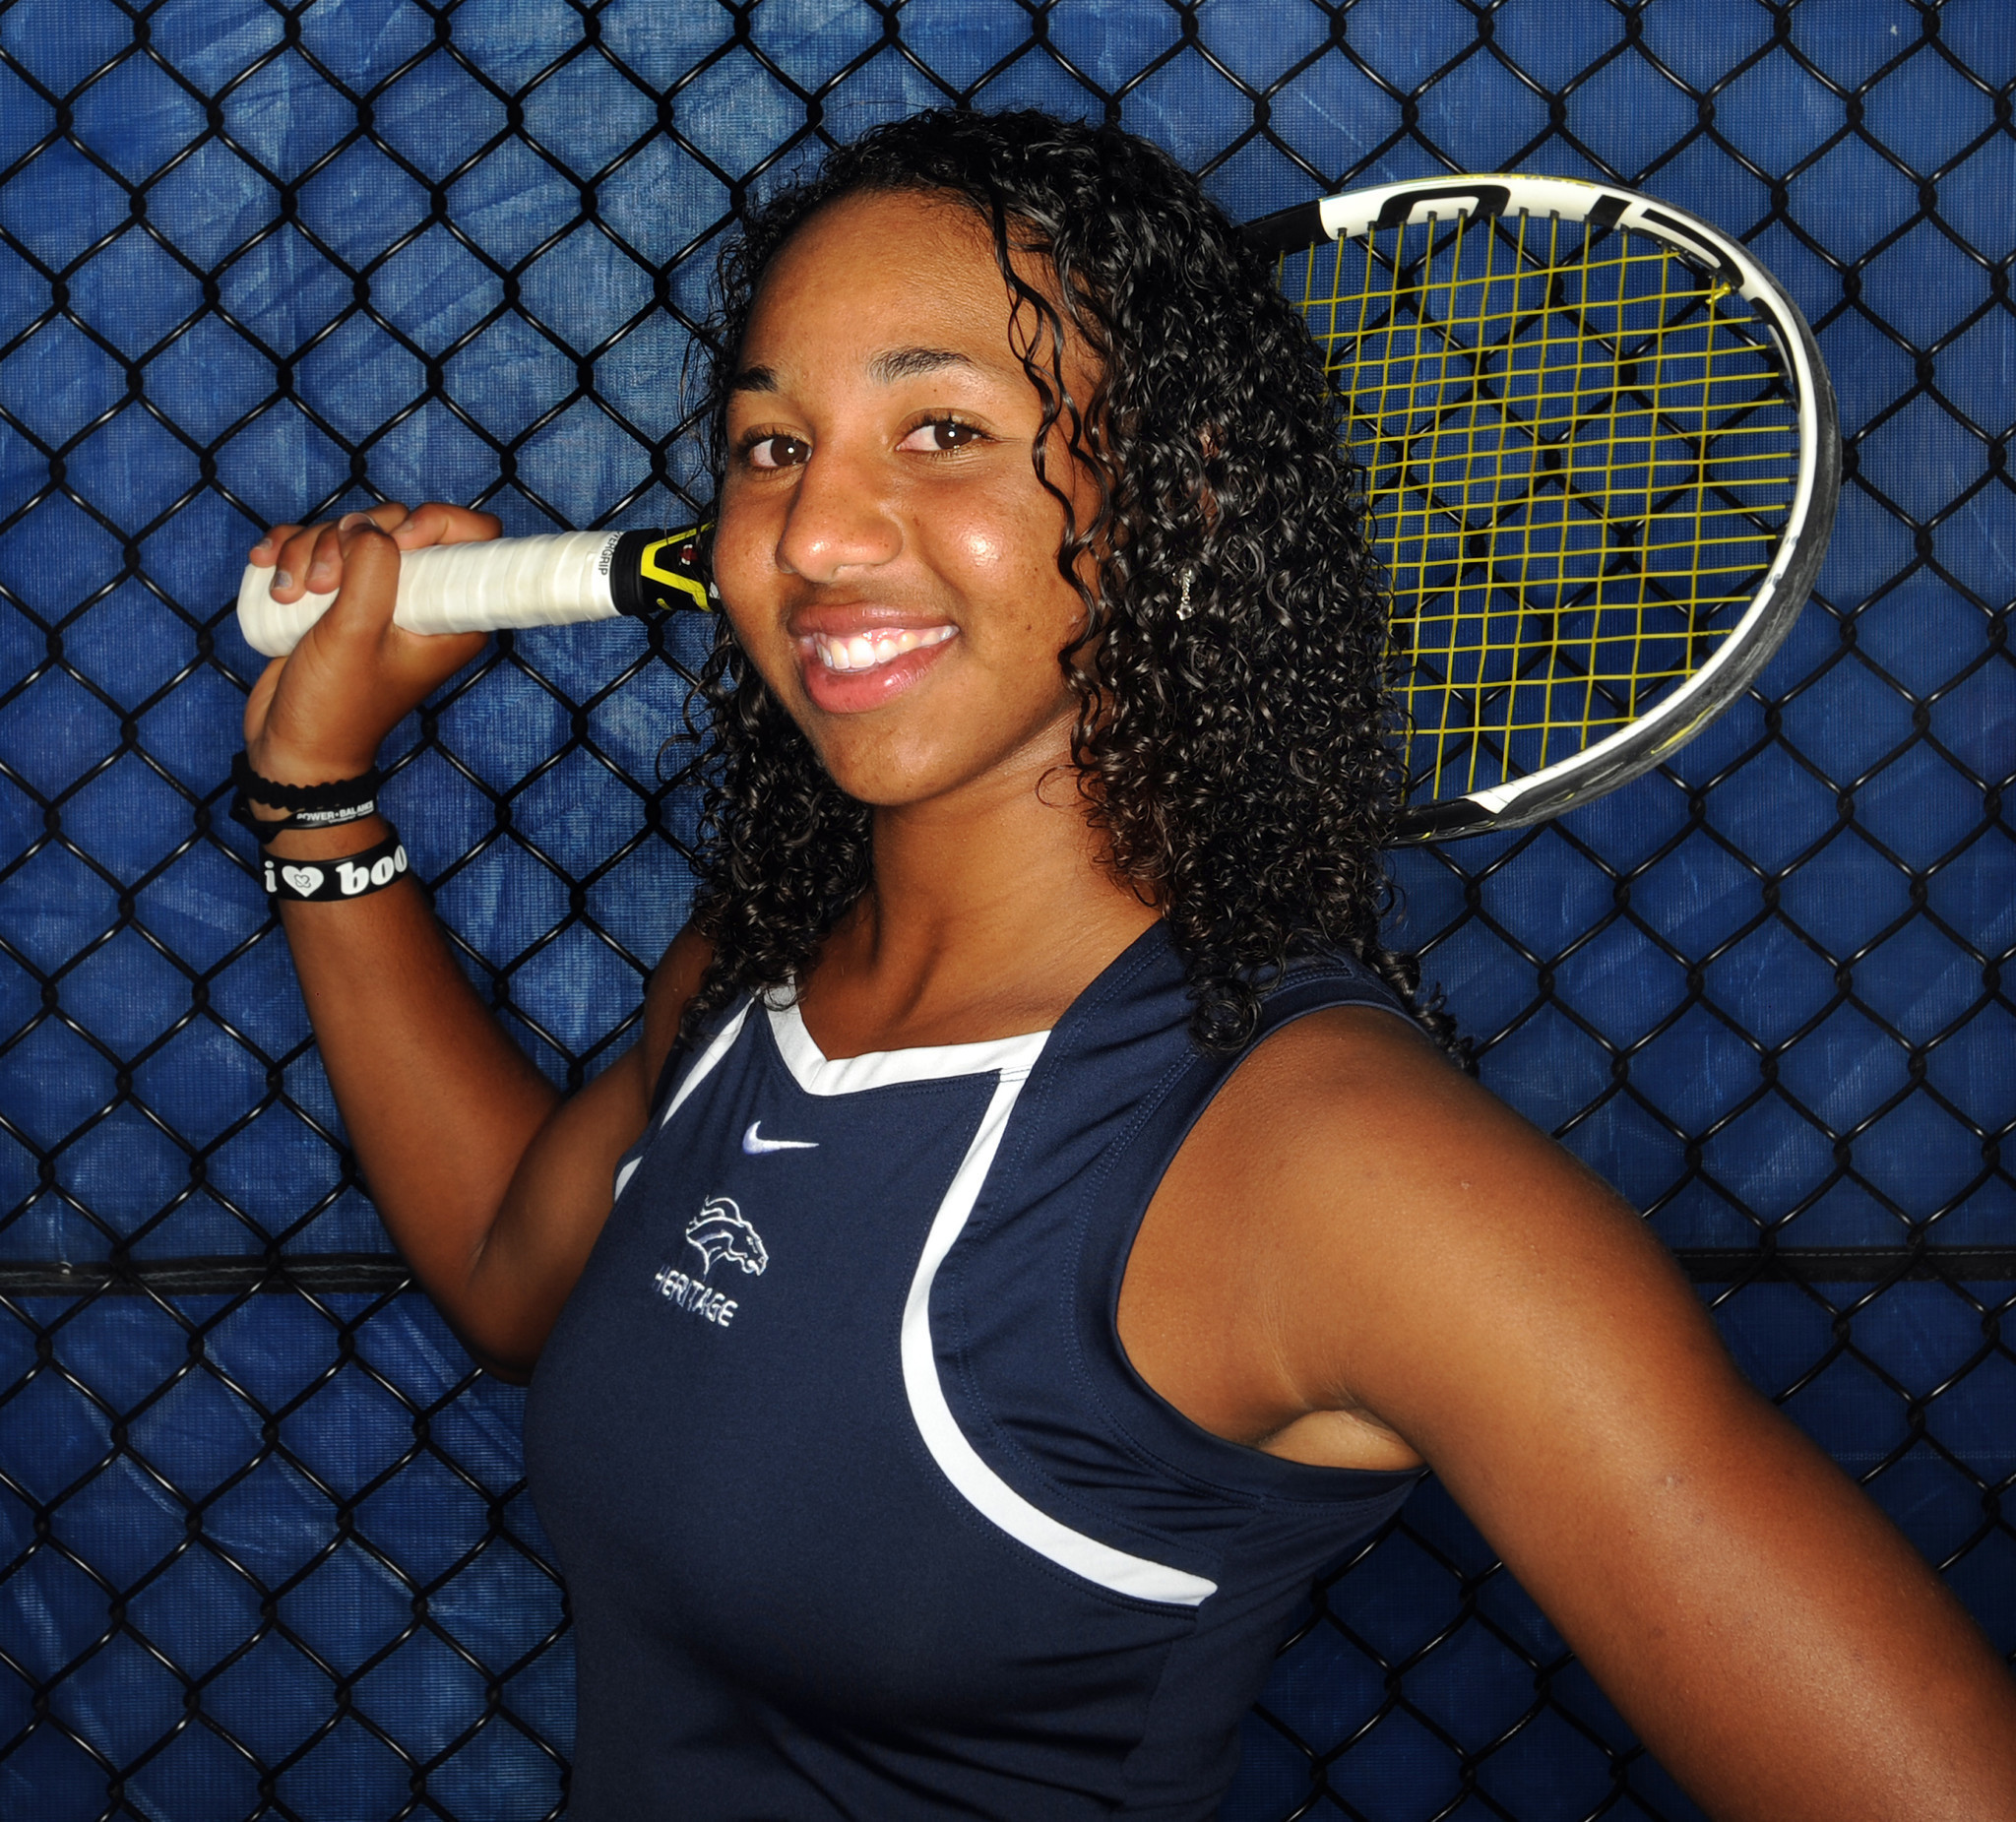 mcadoo christian singles For american heritage senior rasheeda mcadoo, there was no better way close out her high school tennis career than winning back-to-back state titles in overall singles.